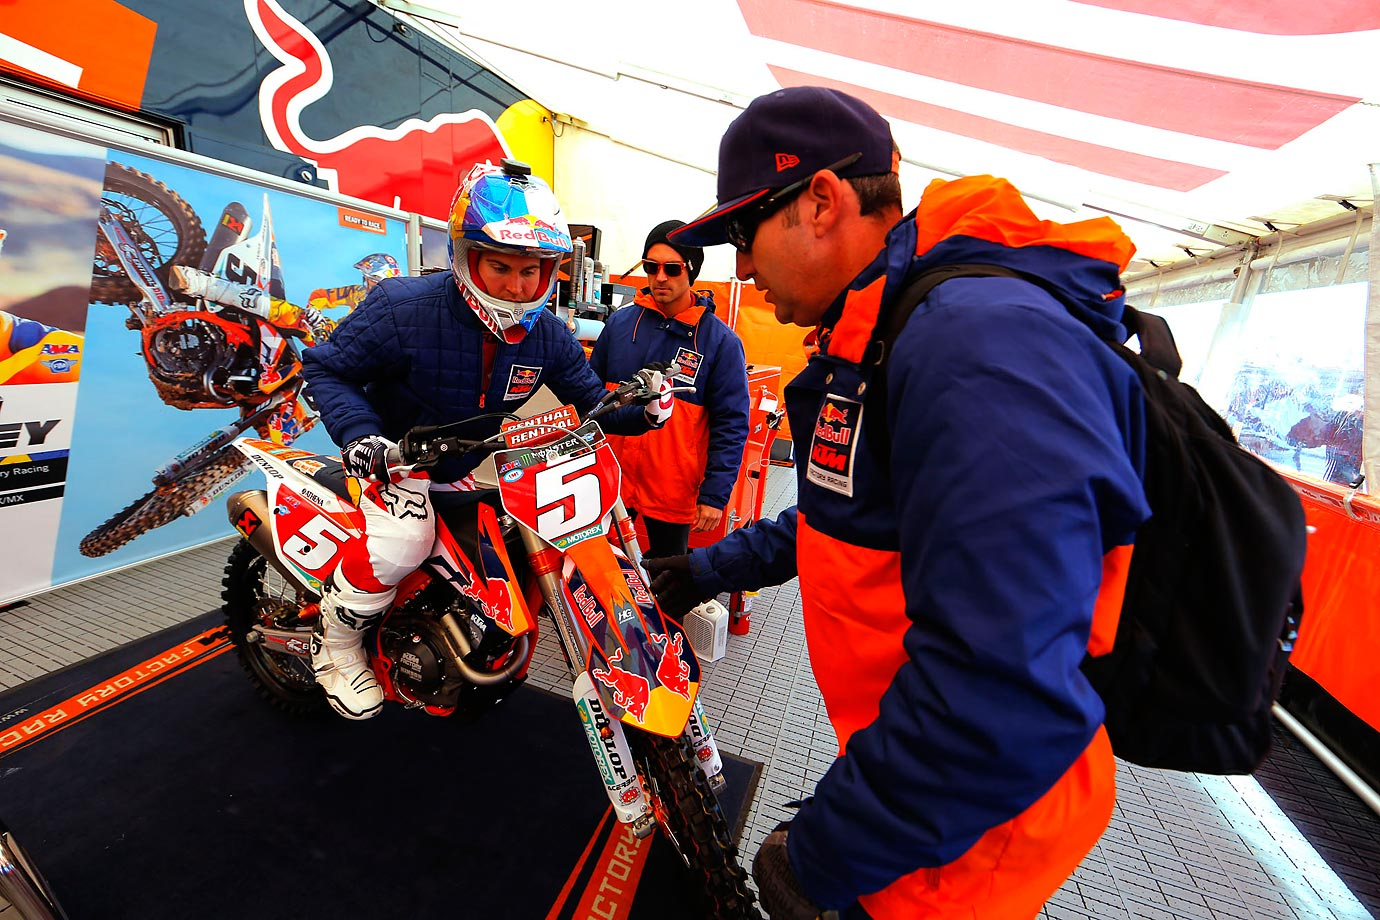 Dungey and members of his team prepare for practice runs.